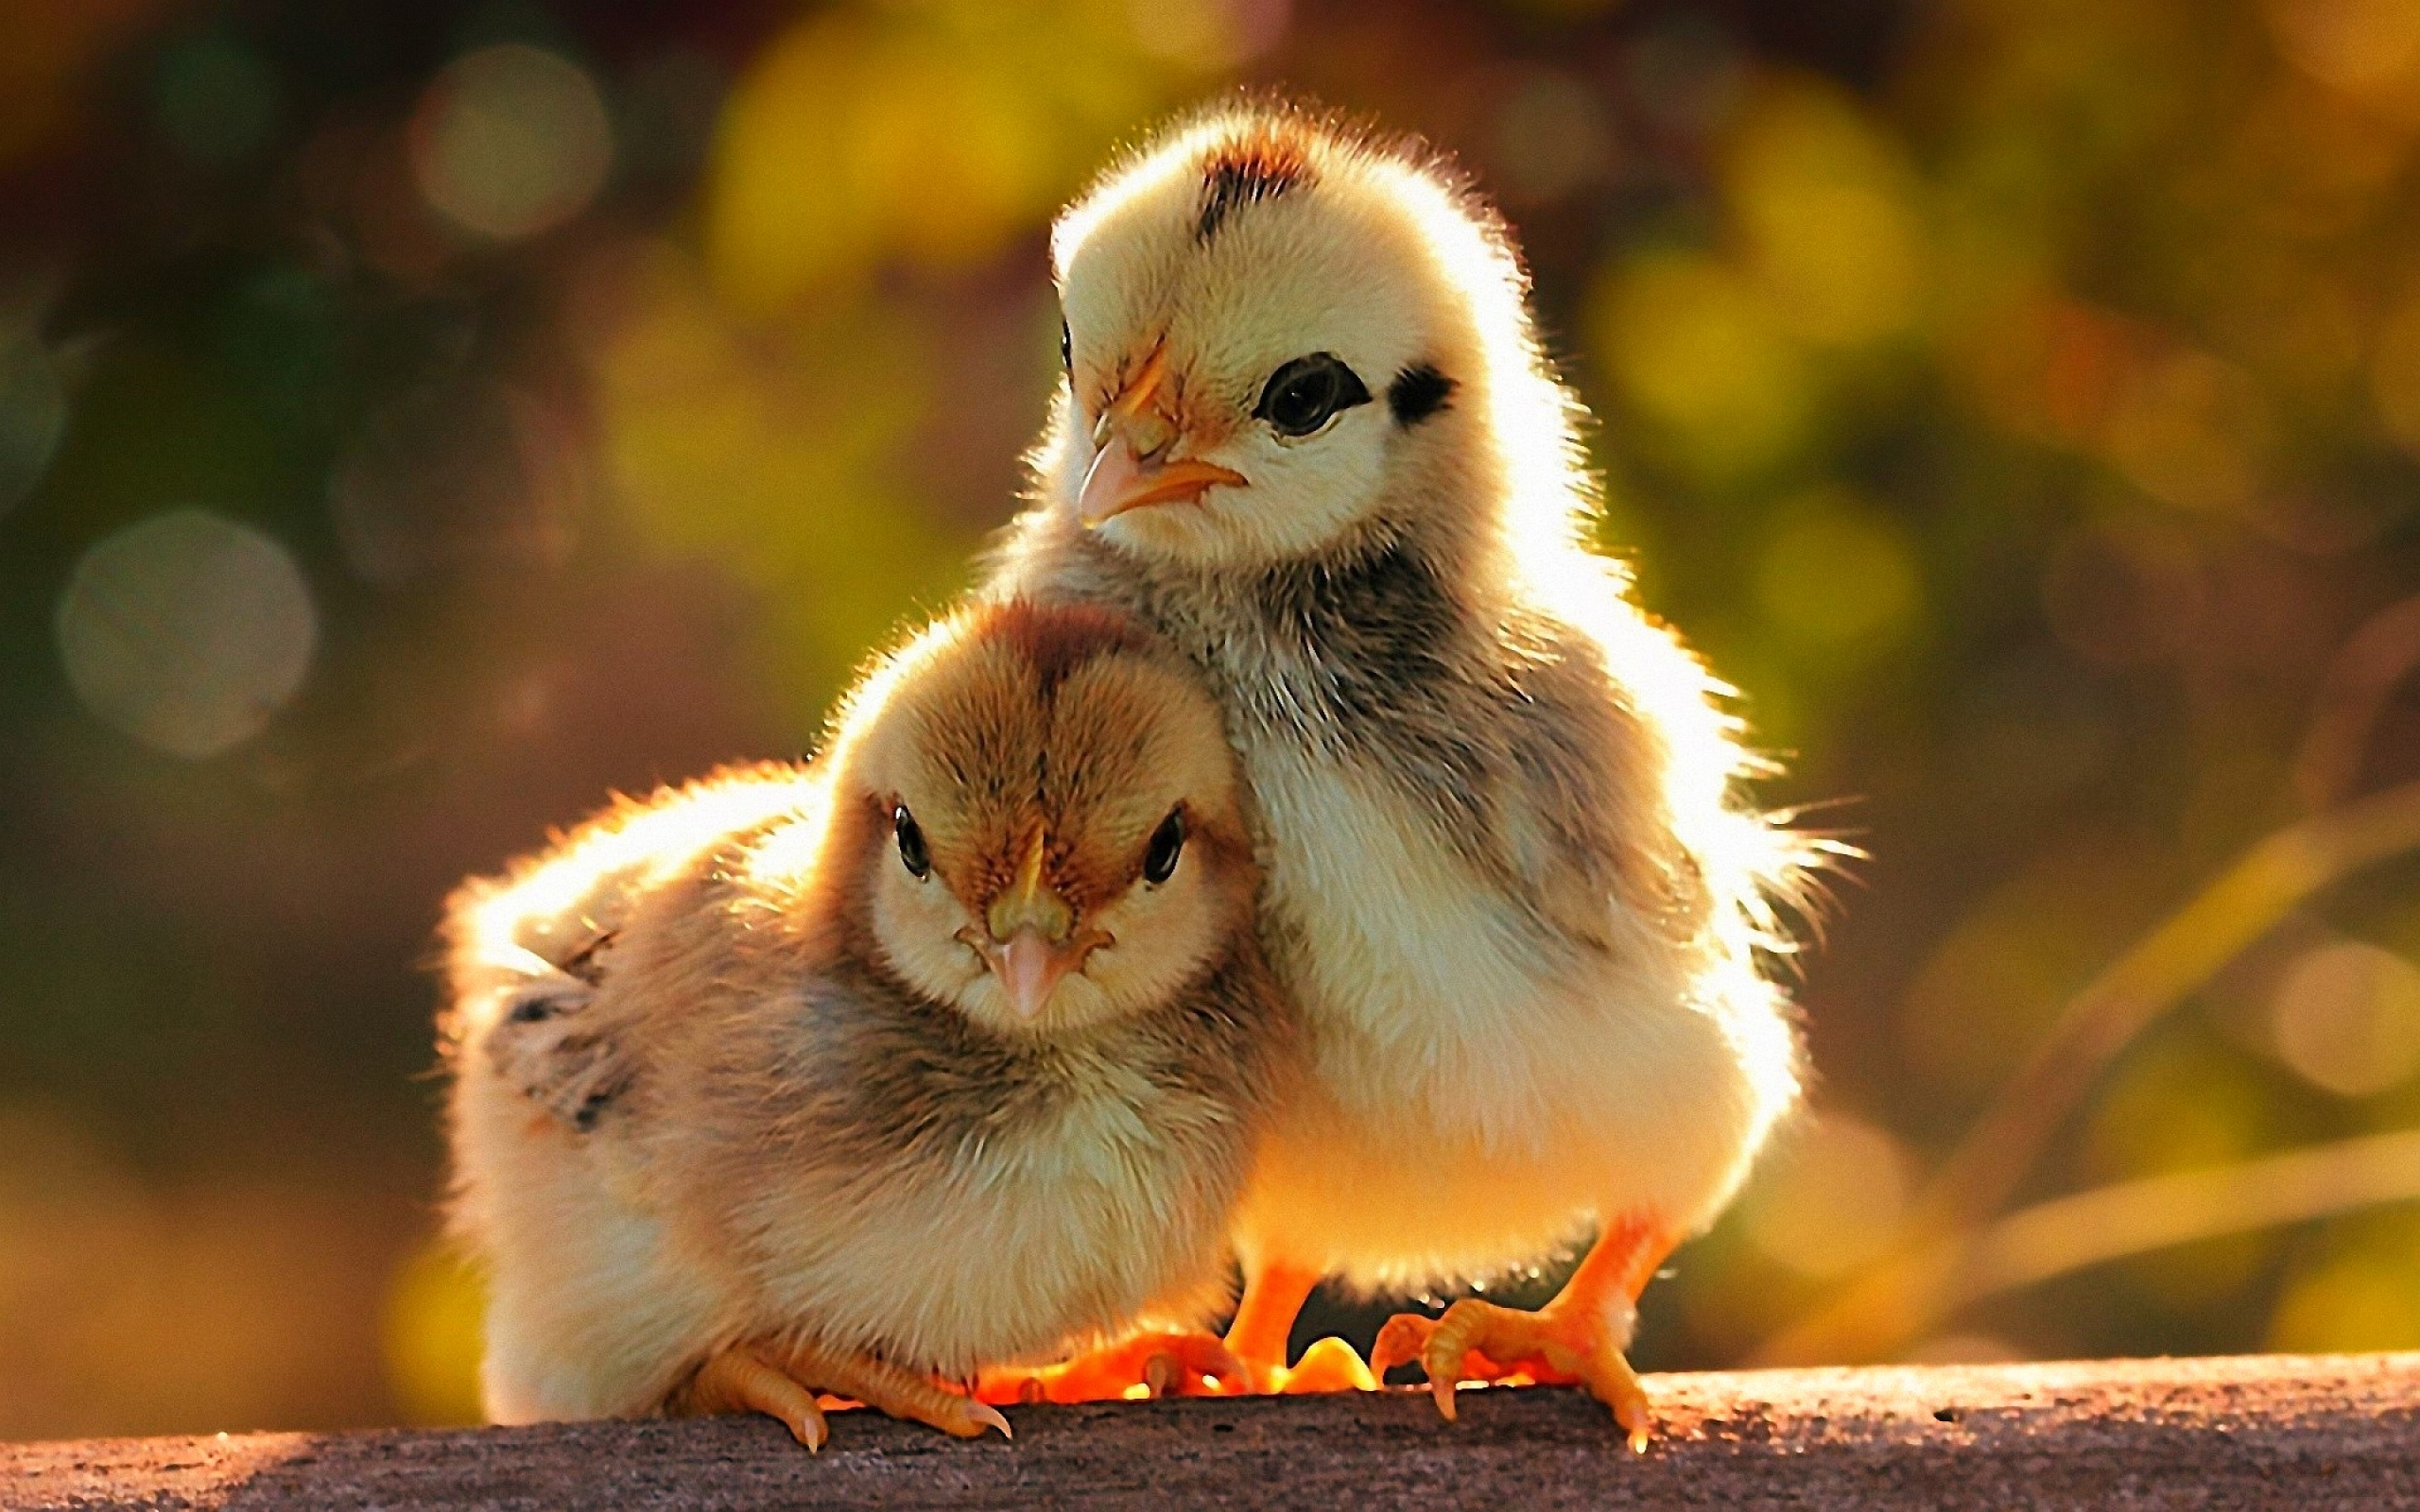 Chick HD Wallpapers